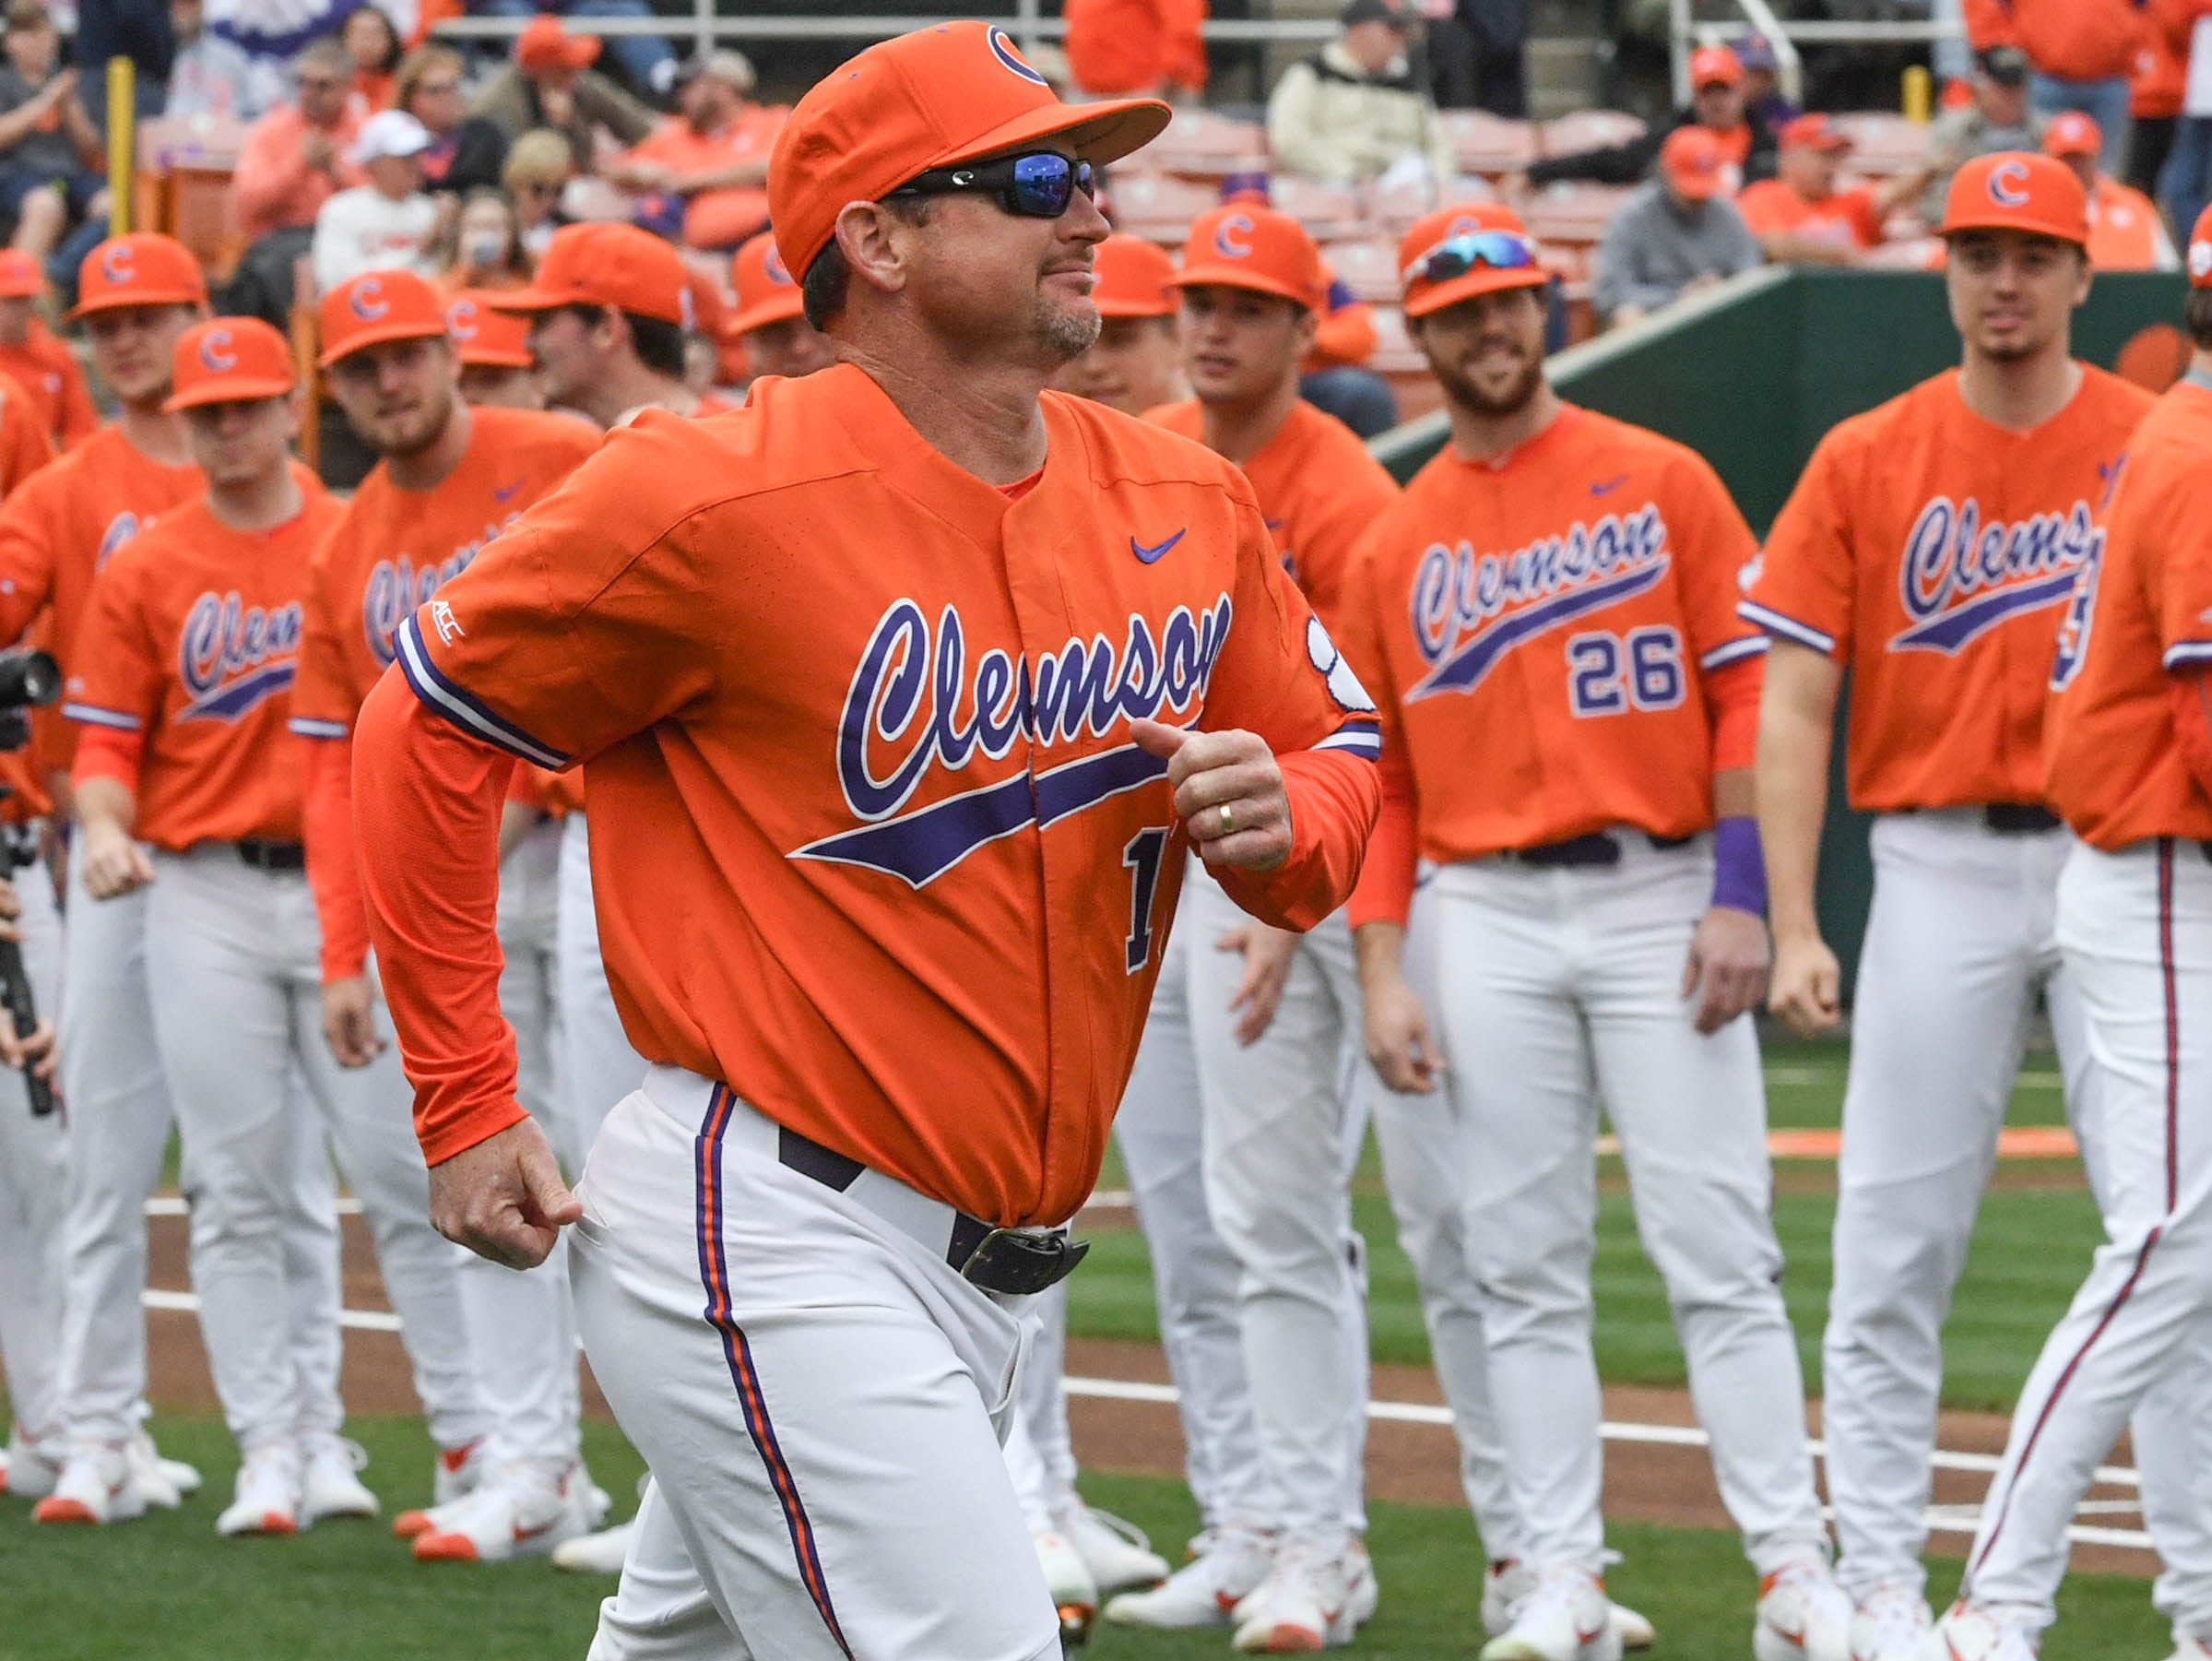 Clemson head coach Monte Lee is introduced before the game at Doug Kingsmore Stadium in Clemson Friday, February 15, 2019.